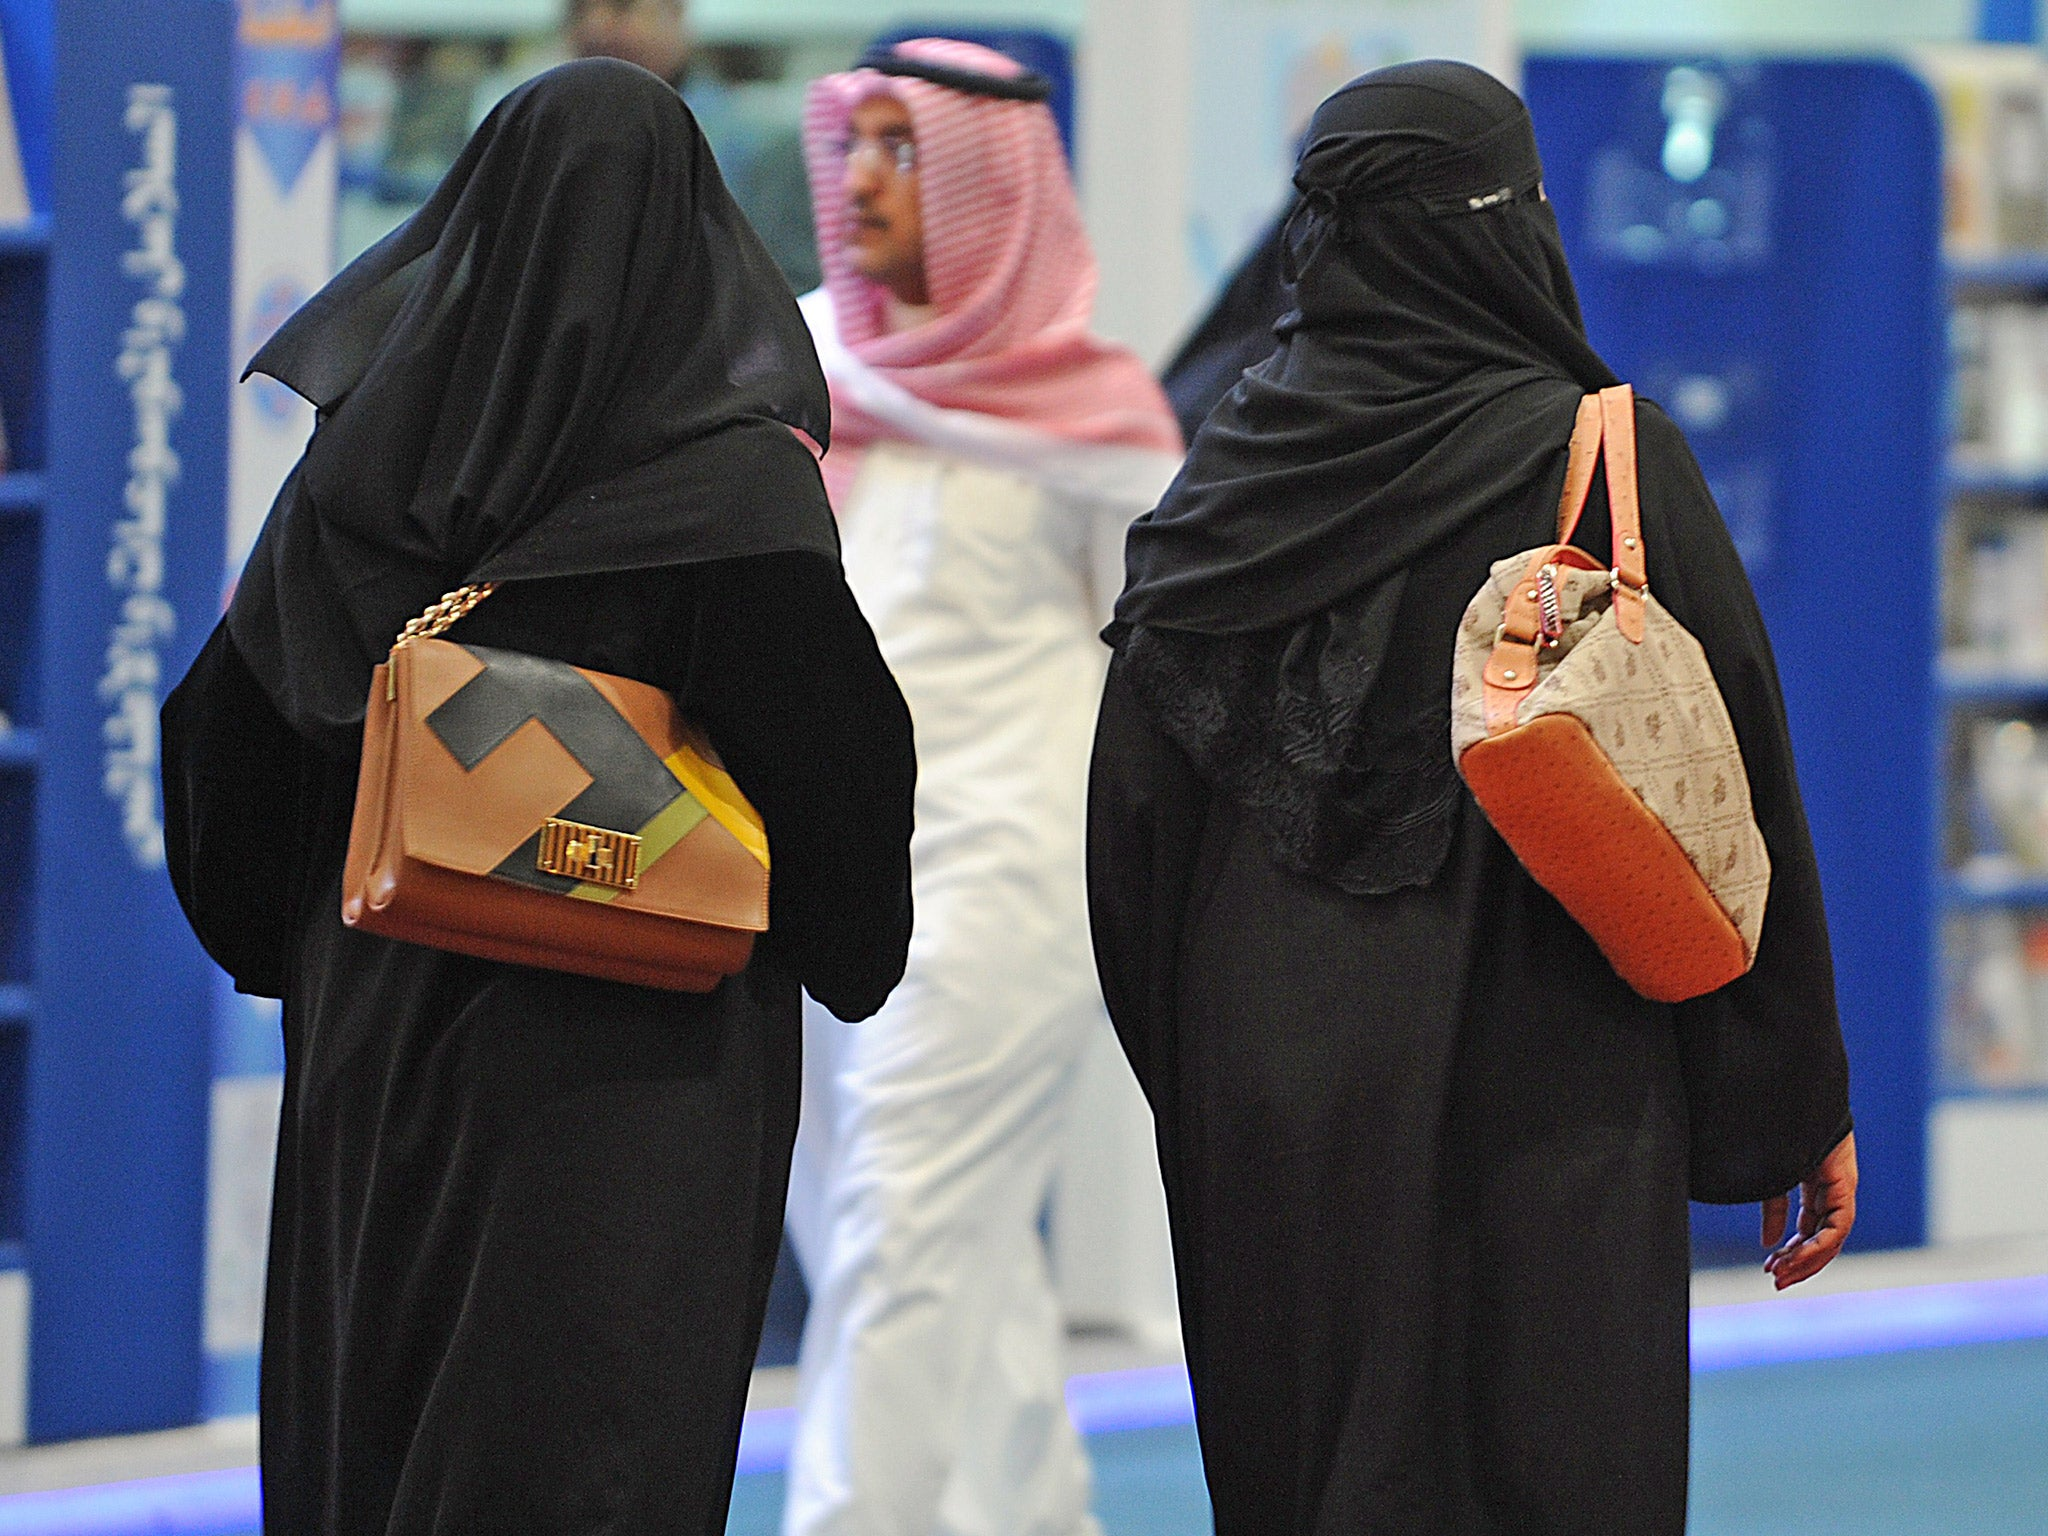 Saudi Arabia: Women face flogging and jail for checking husband's phone